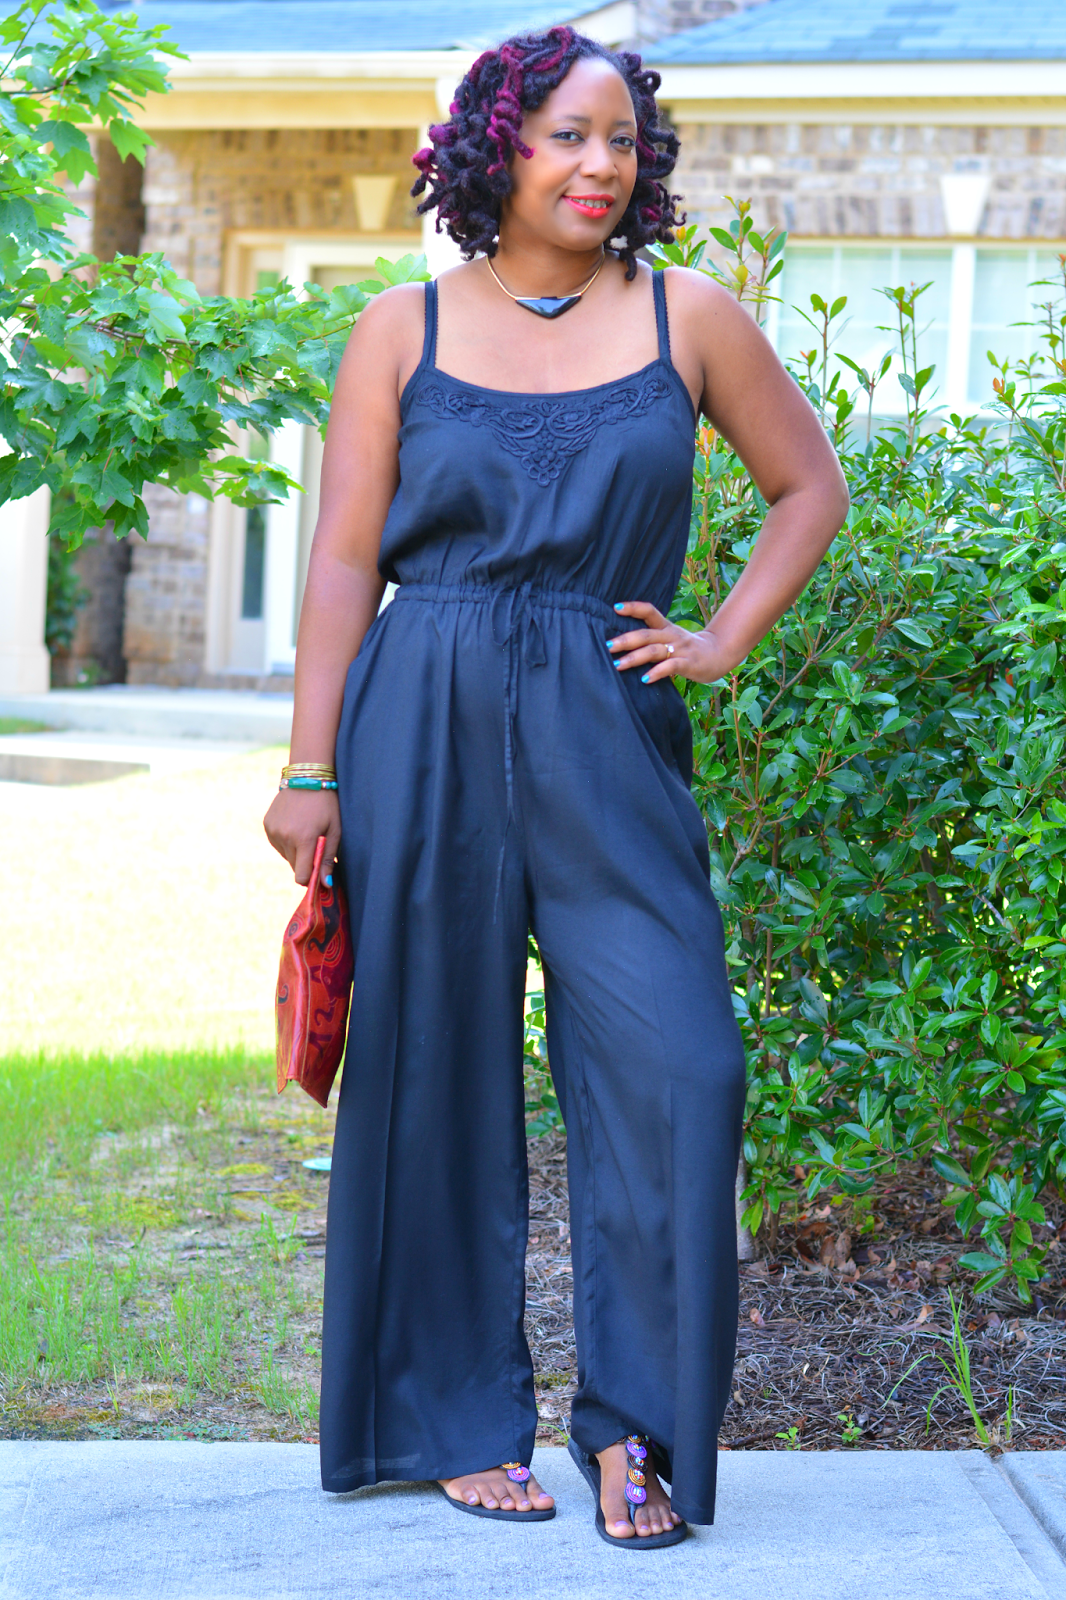 jumpsuit ideas for summer